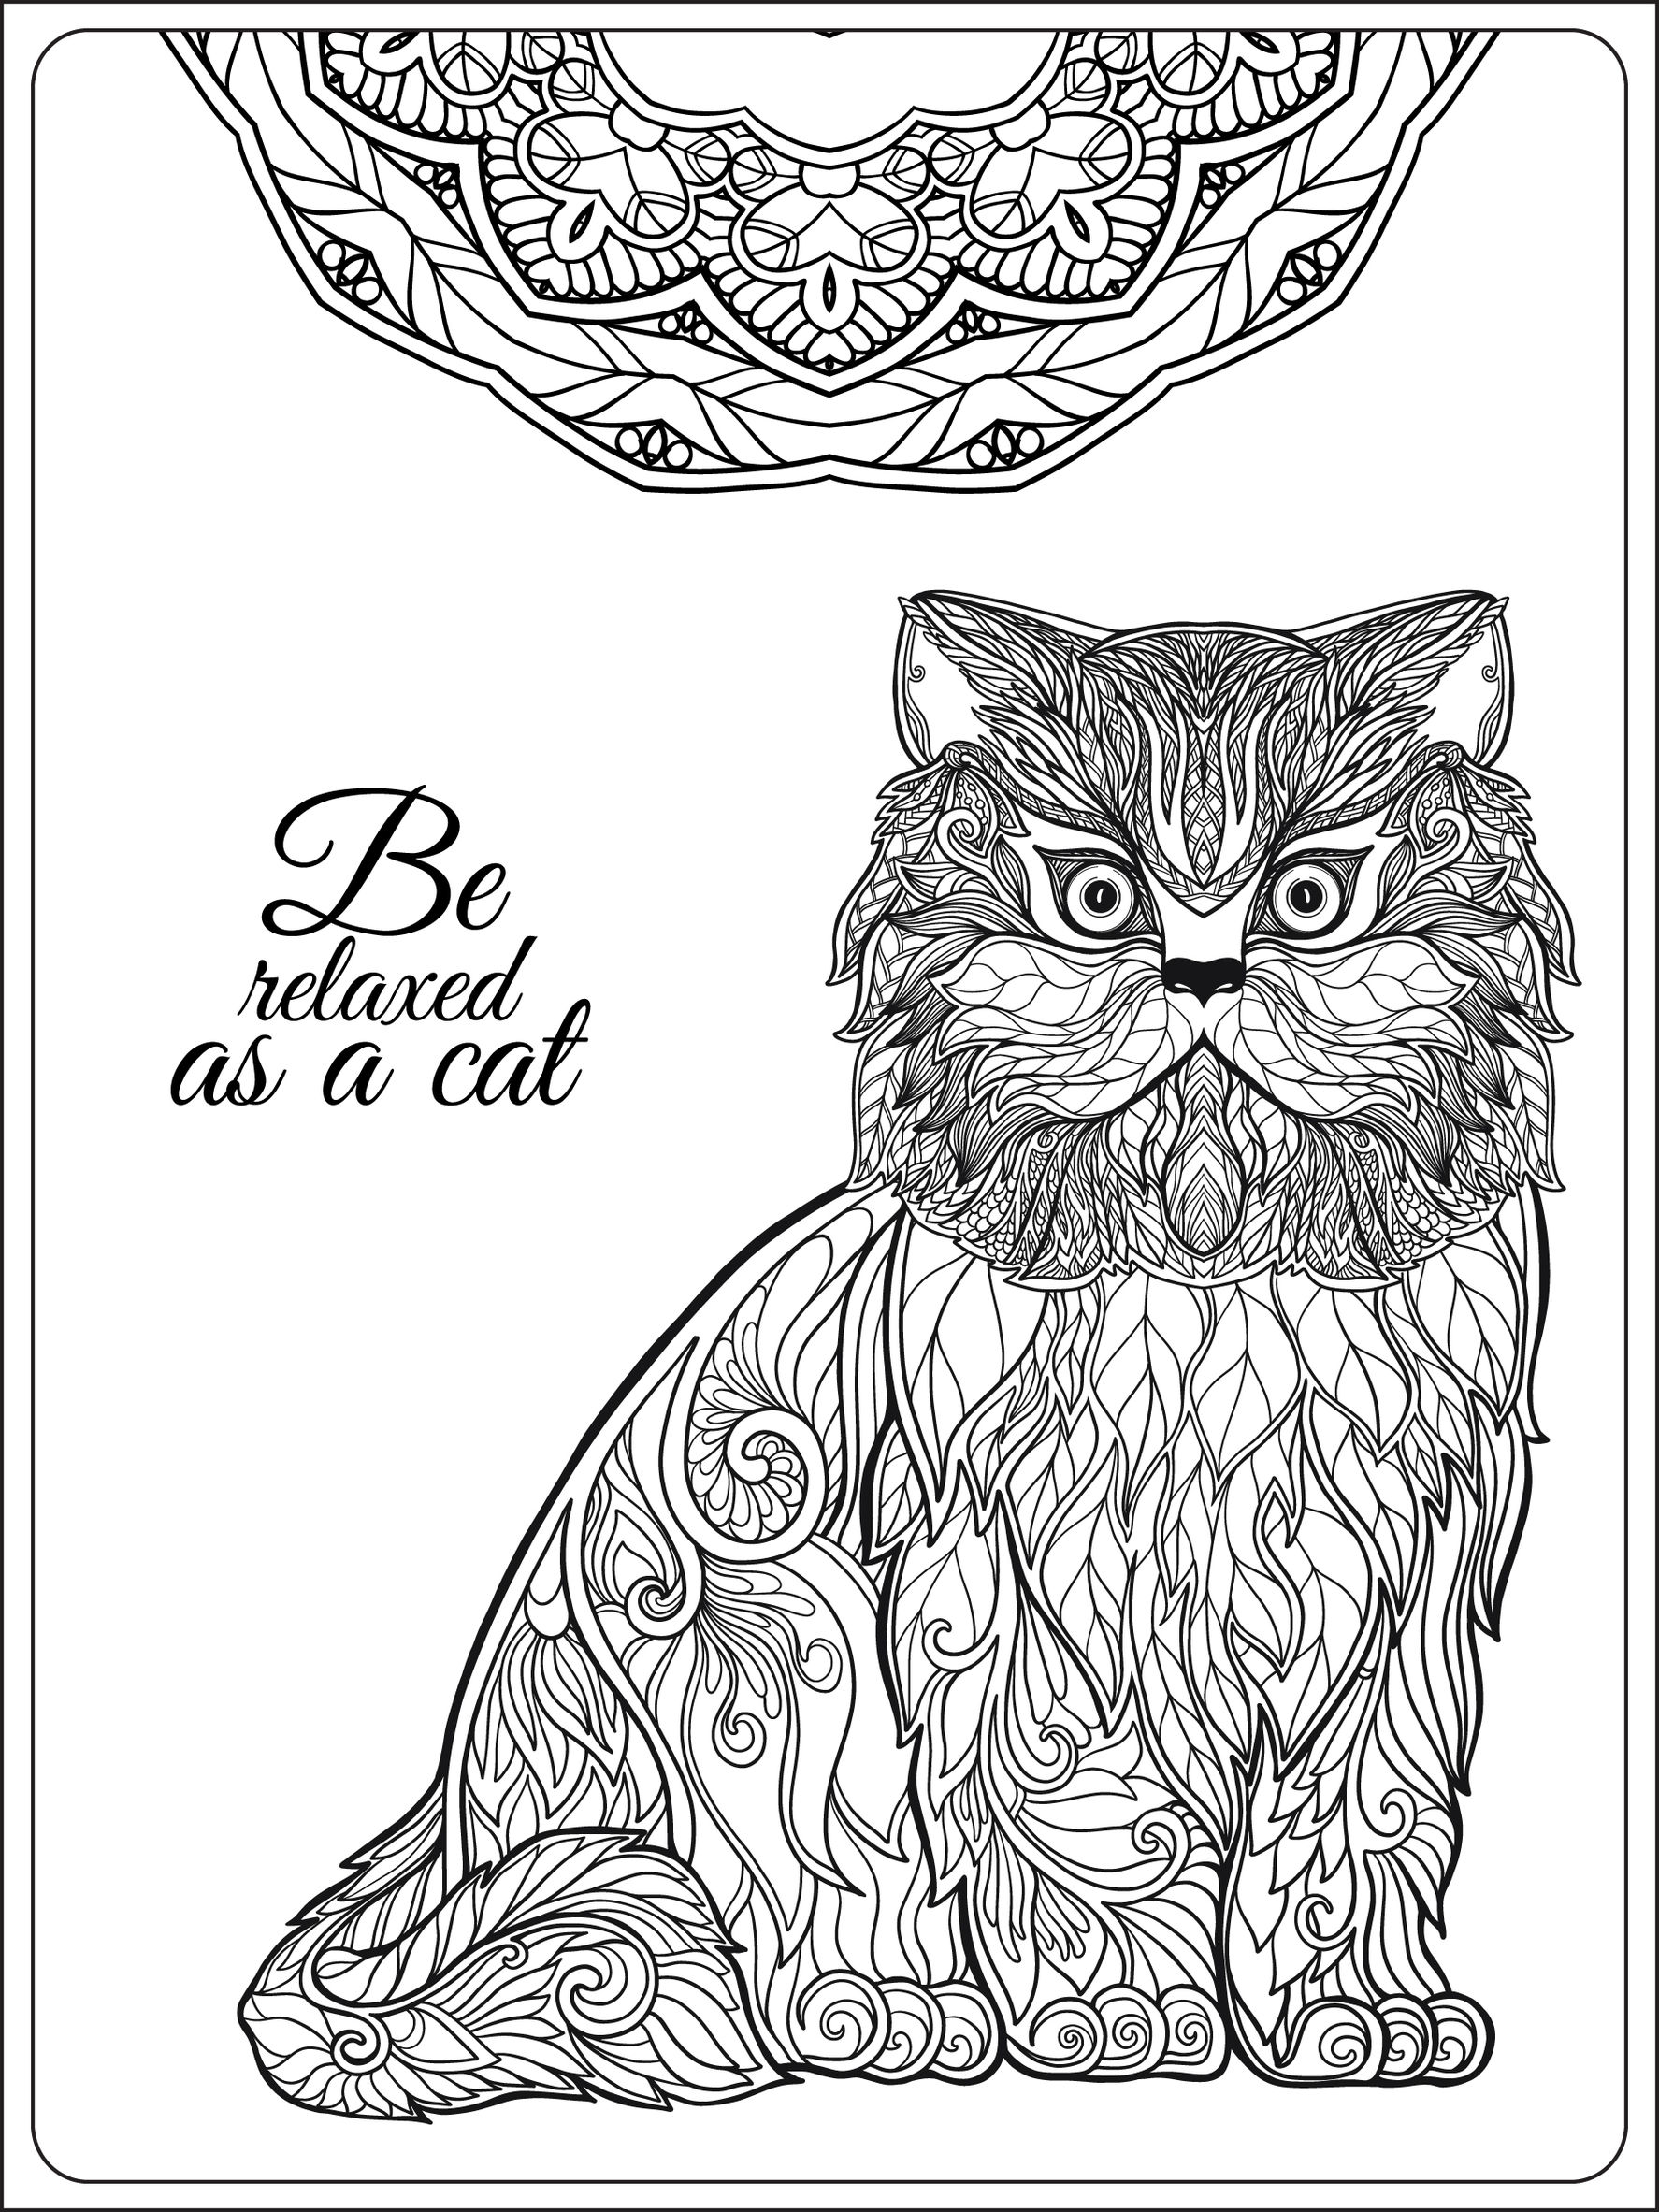 Coloring pages relaxing - Your Creations You Have Colored This Coloring Page